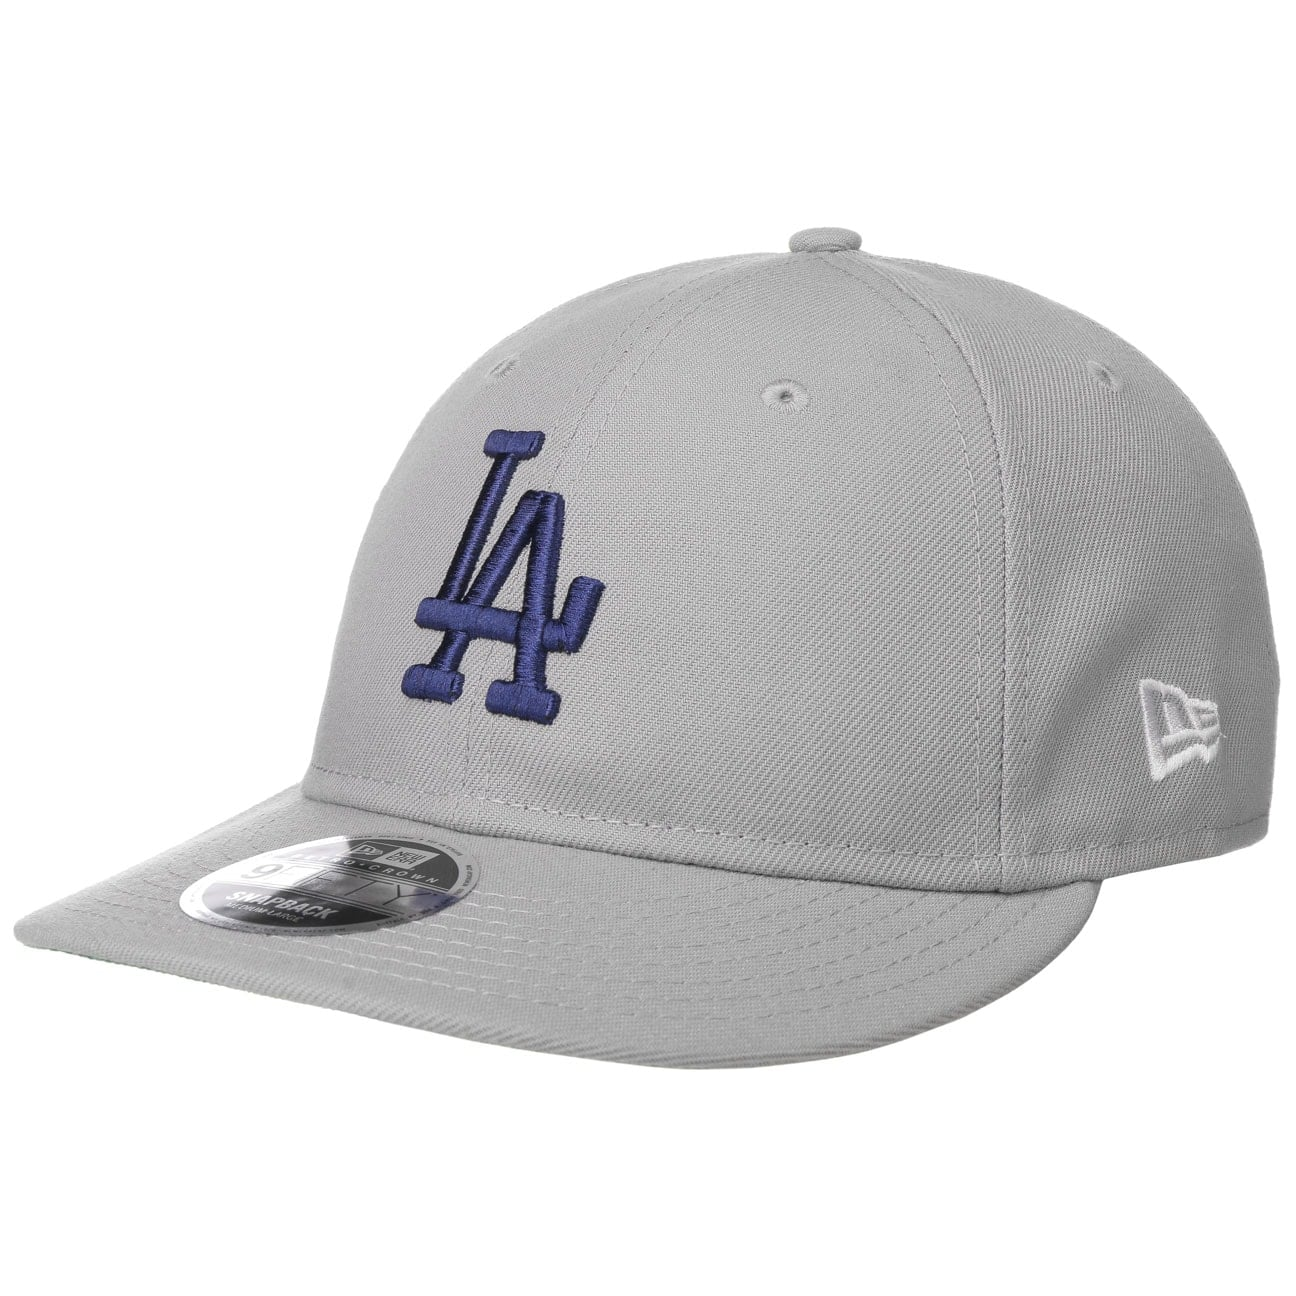 9Fifty Retro Crown Dodgers by New Era